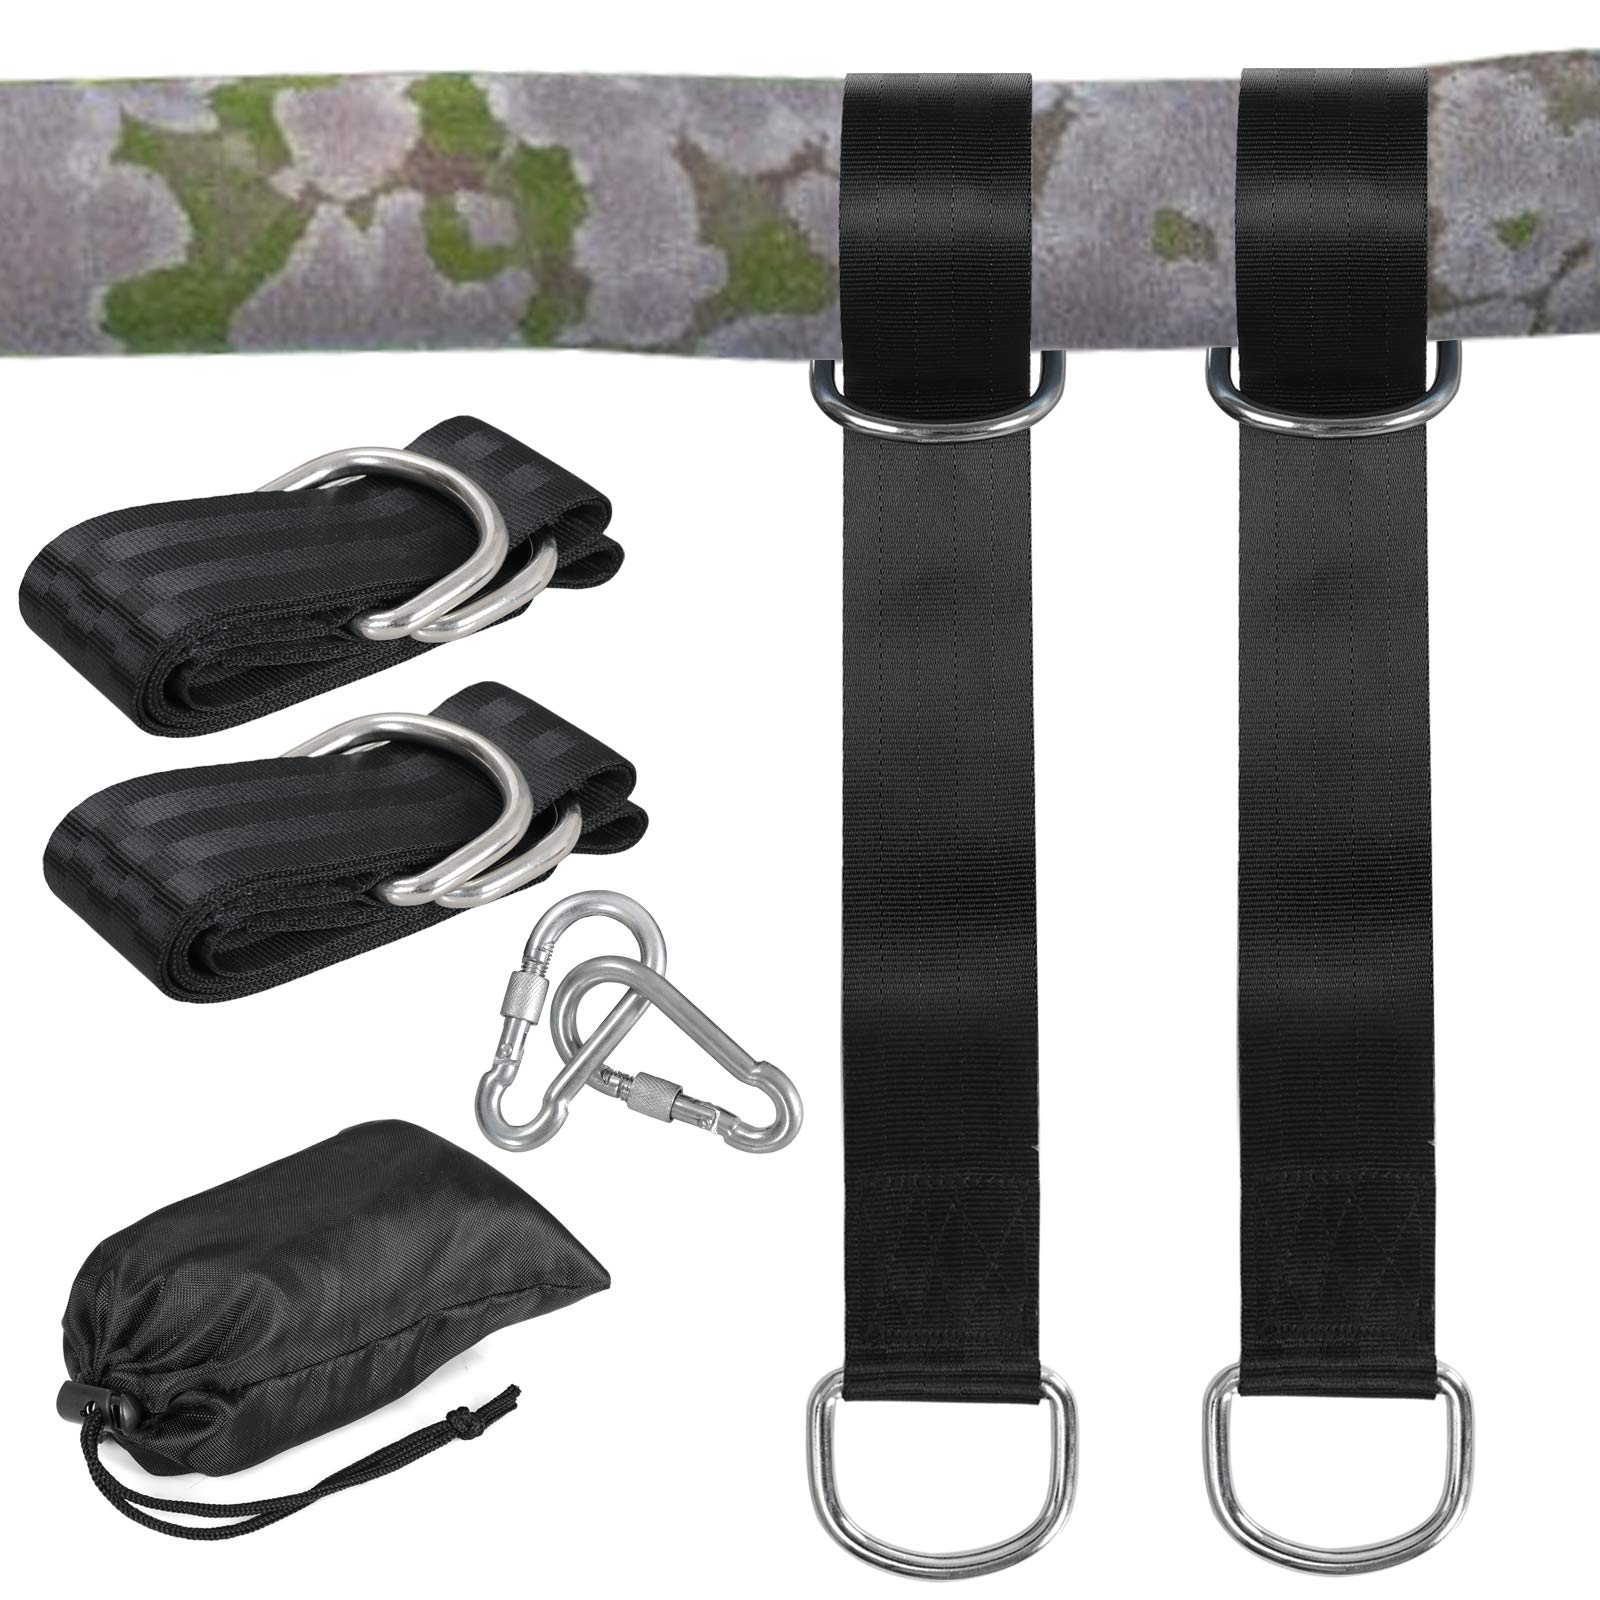 ZENY Tree Swing Straps Hanging Kit Outdoor Hammock Strap Hangers 5ft Long with Safer Lock Snap Carabiner Hooks Set of 2 Straps Holds 660 lbs,Perfect for Tire and Saucer Swings,Carry Bag Included